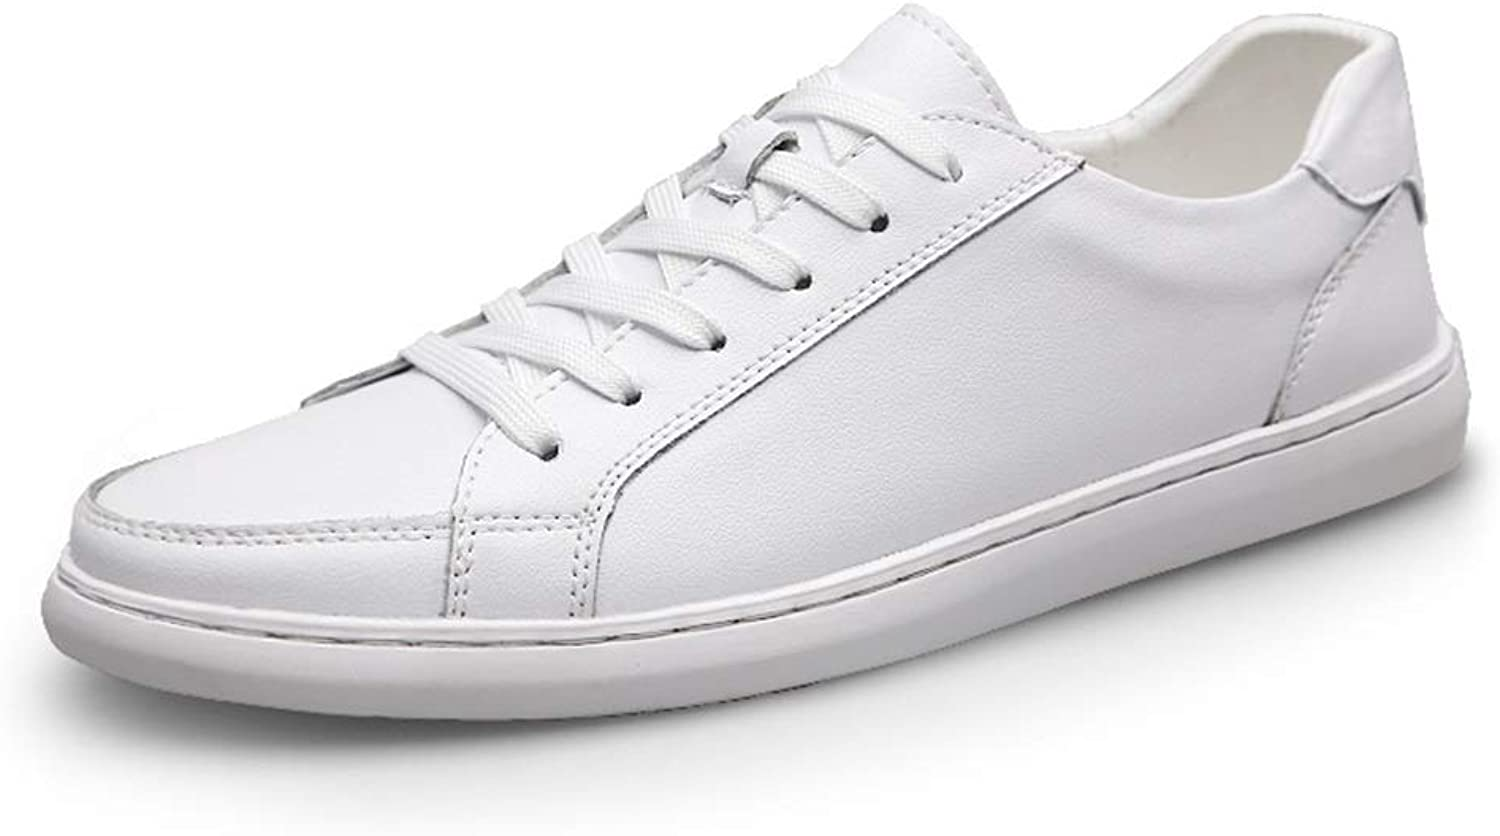 Men's Casual Sports shoes Fashion OX Leather Sports shoes Lace Up Simple with Low Top Athletic shoes for Men Lightweight Walking Sneakers (color   White, Size   10 D(M) US)